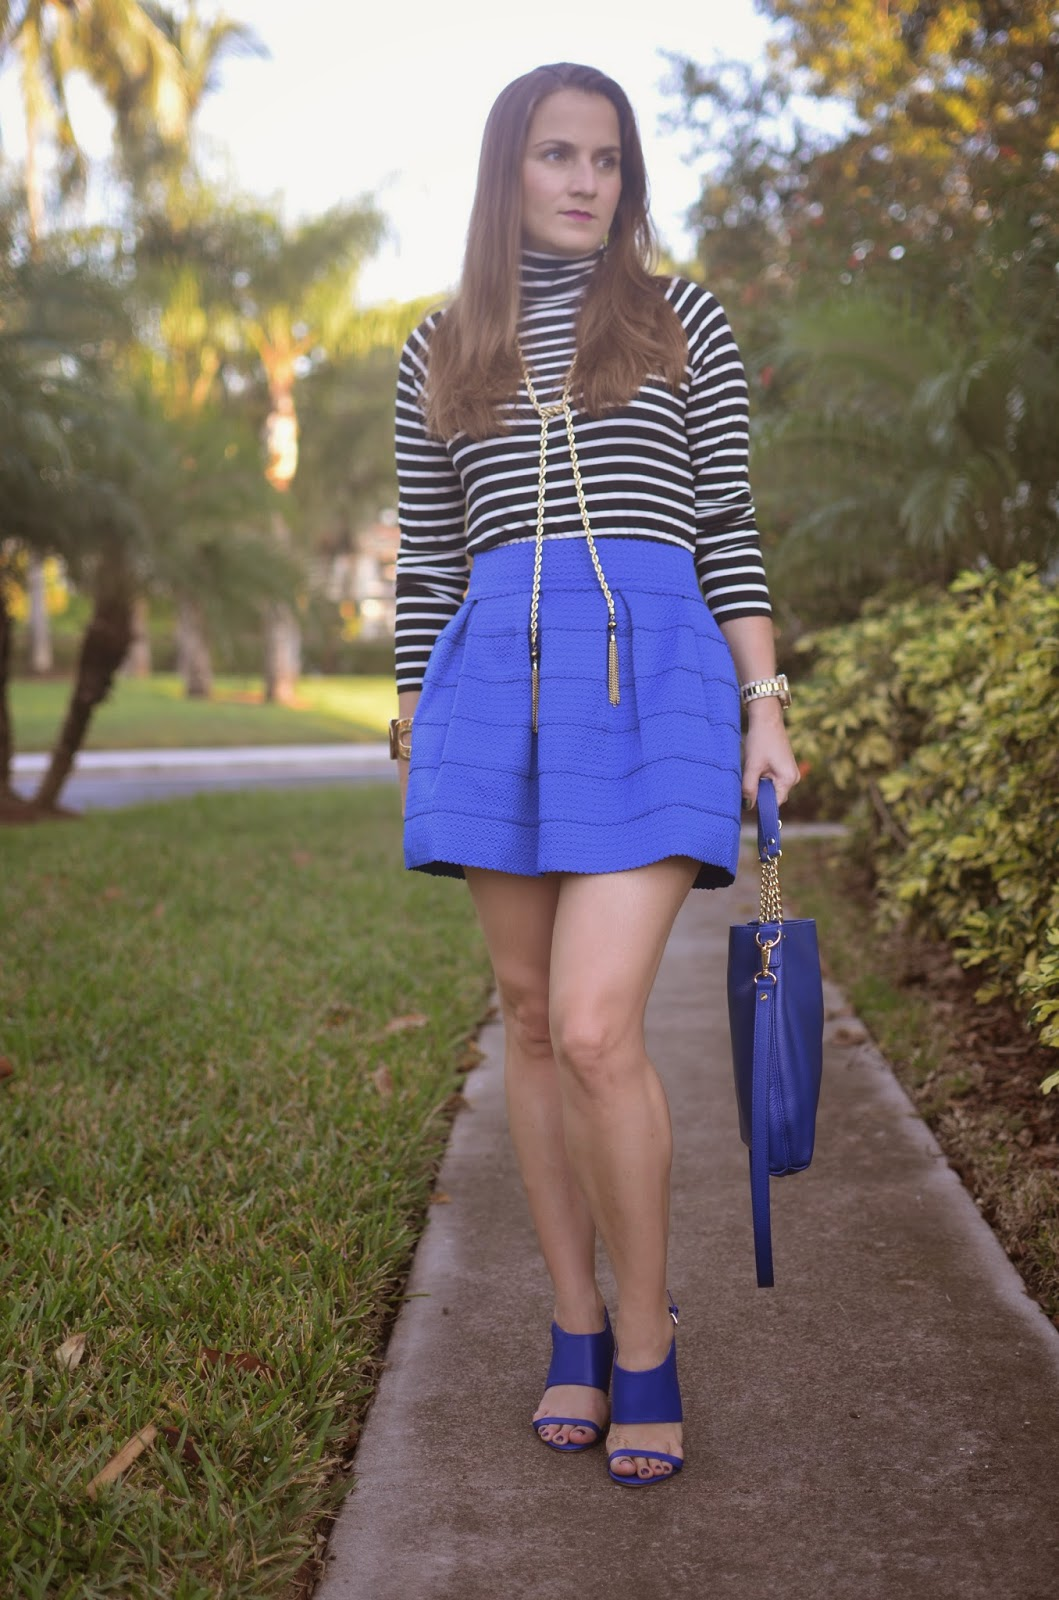 Cobalt pleated skirt - stripped turtleneck - cobalt wedges - cobalt bag